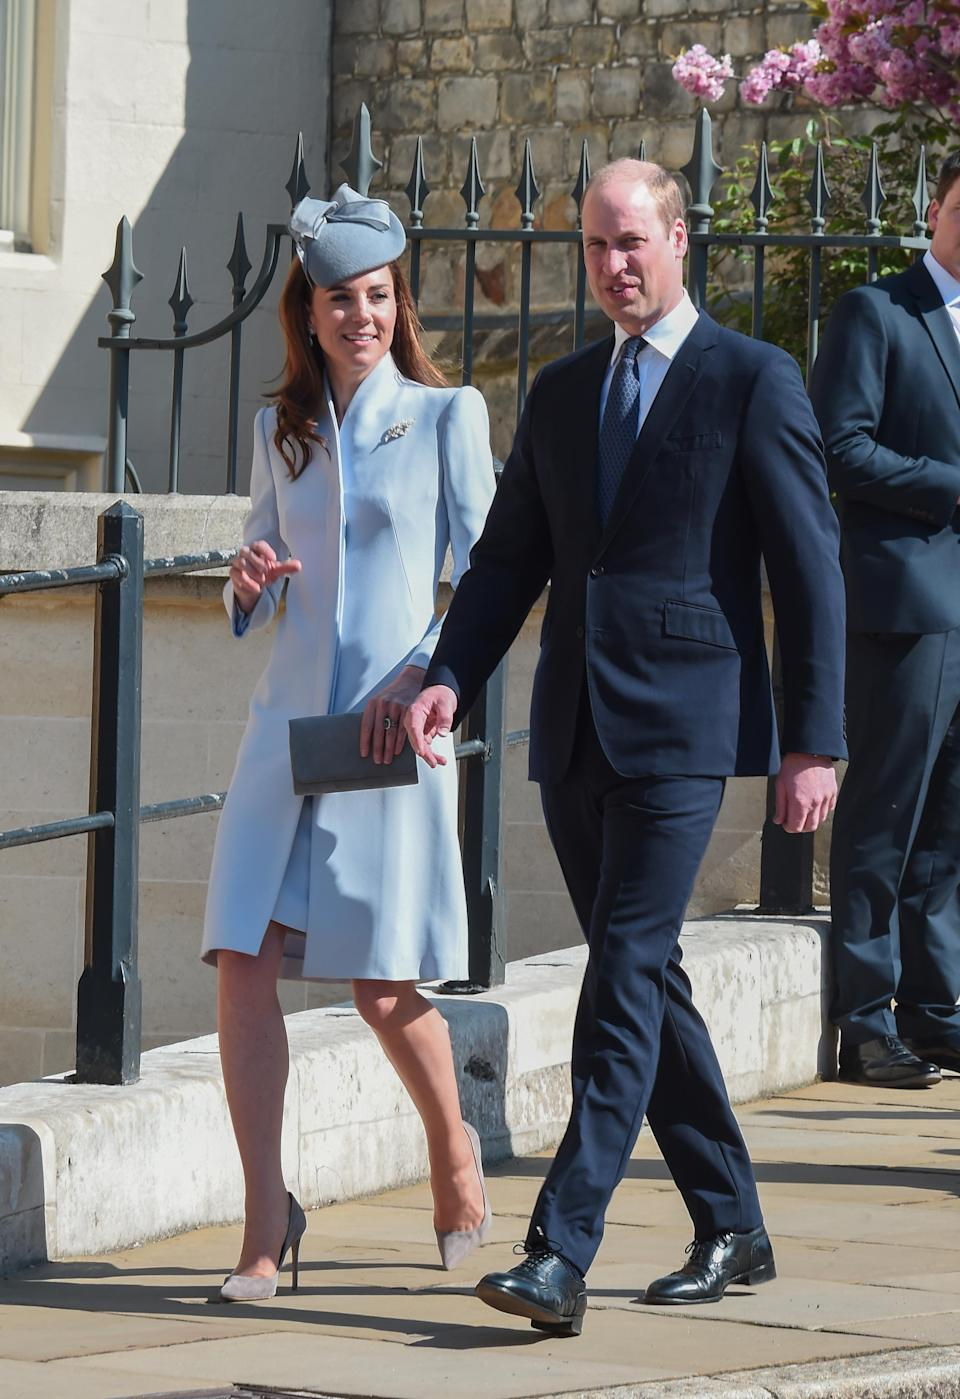 For the Easter Sunday service at St George's Chapel in Windsor, Kate repeated her dove grey Alexander McQueen coat with her Jane Taylor hat from her tour of Australia 2014. Her grey accessories are both by Emmy London. [Photo: PA]